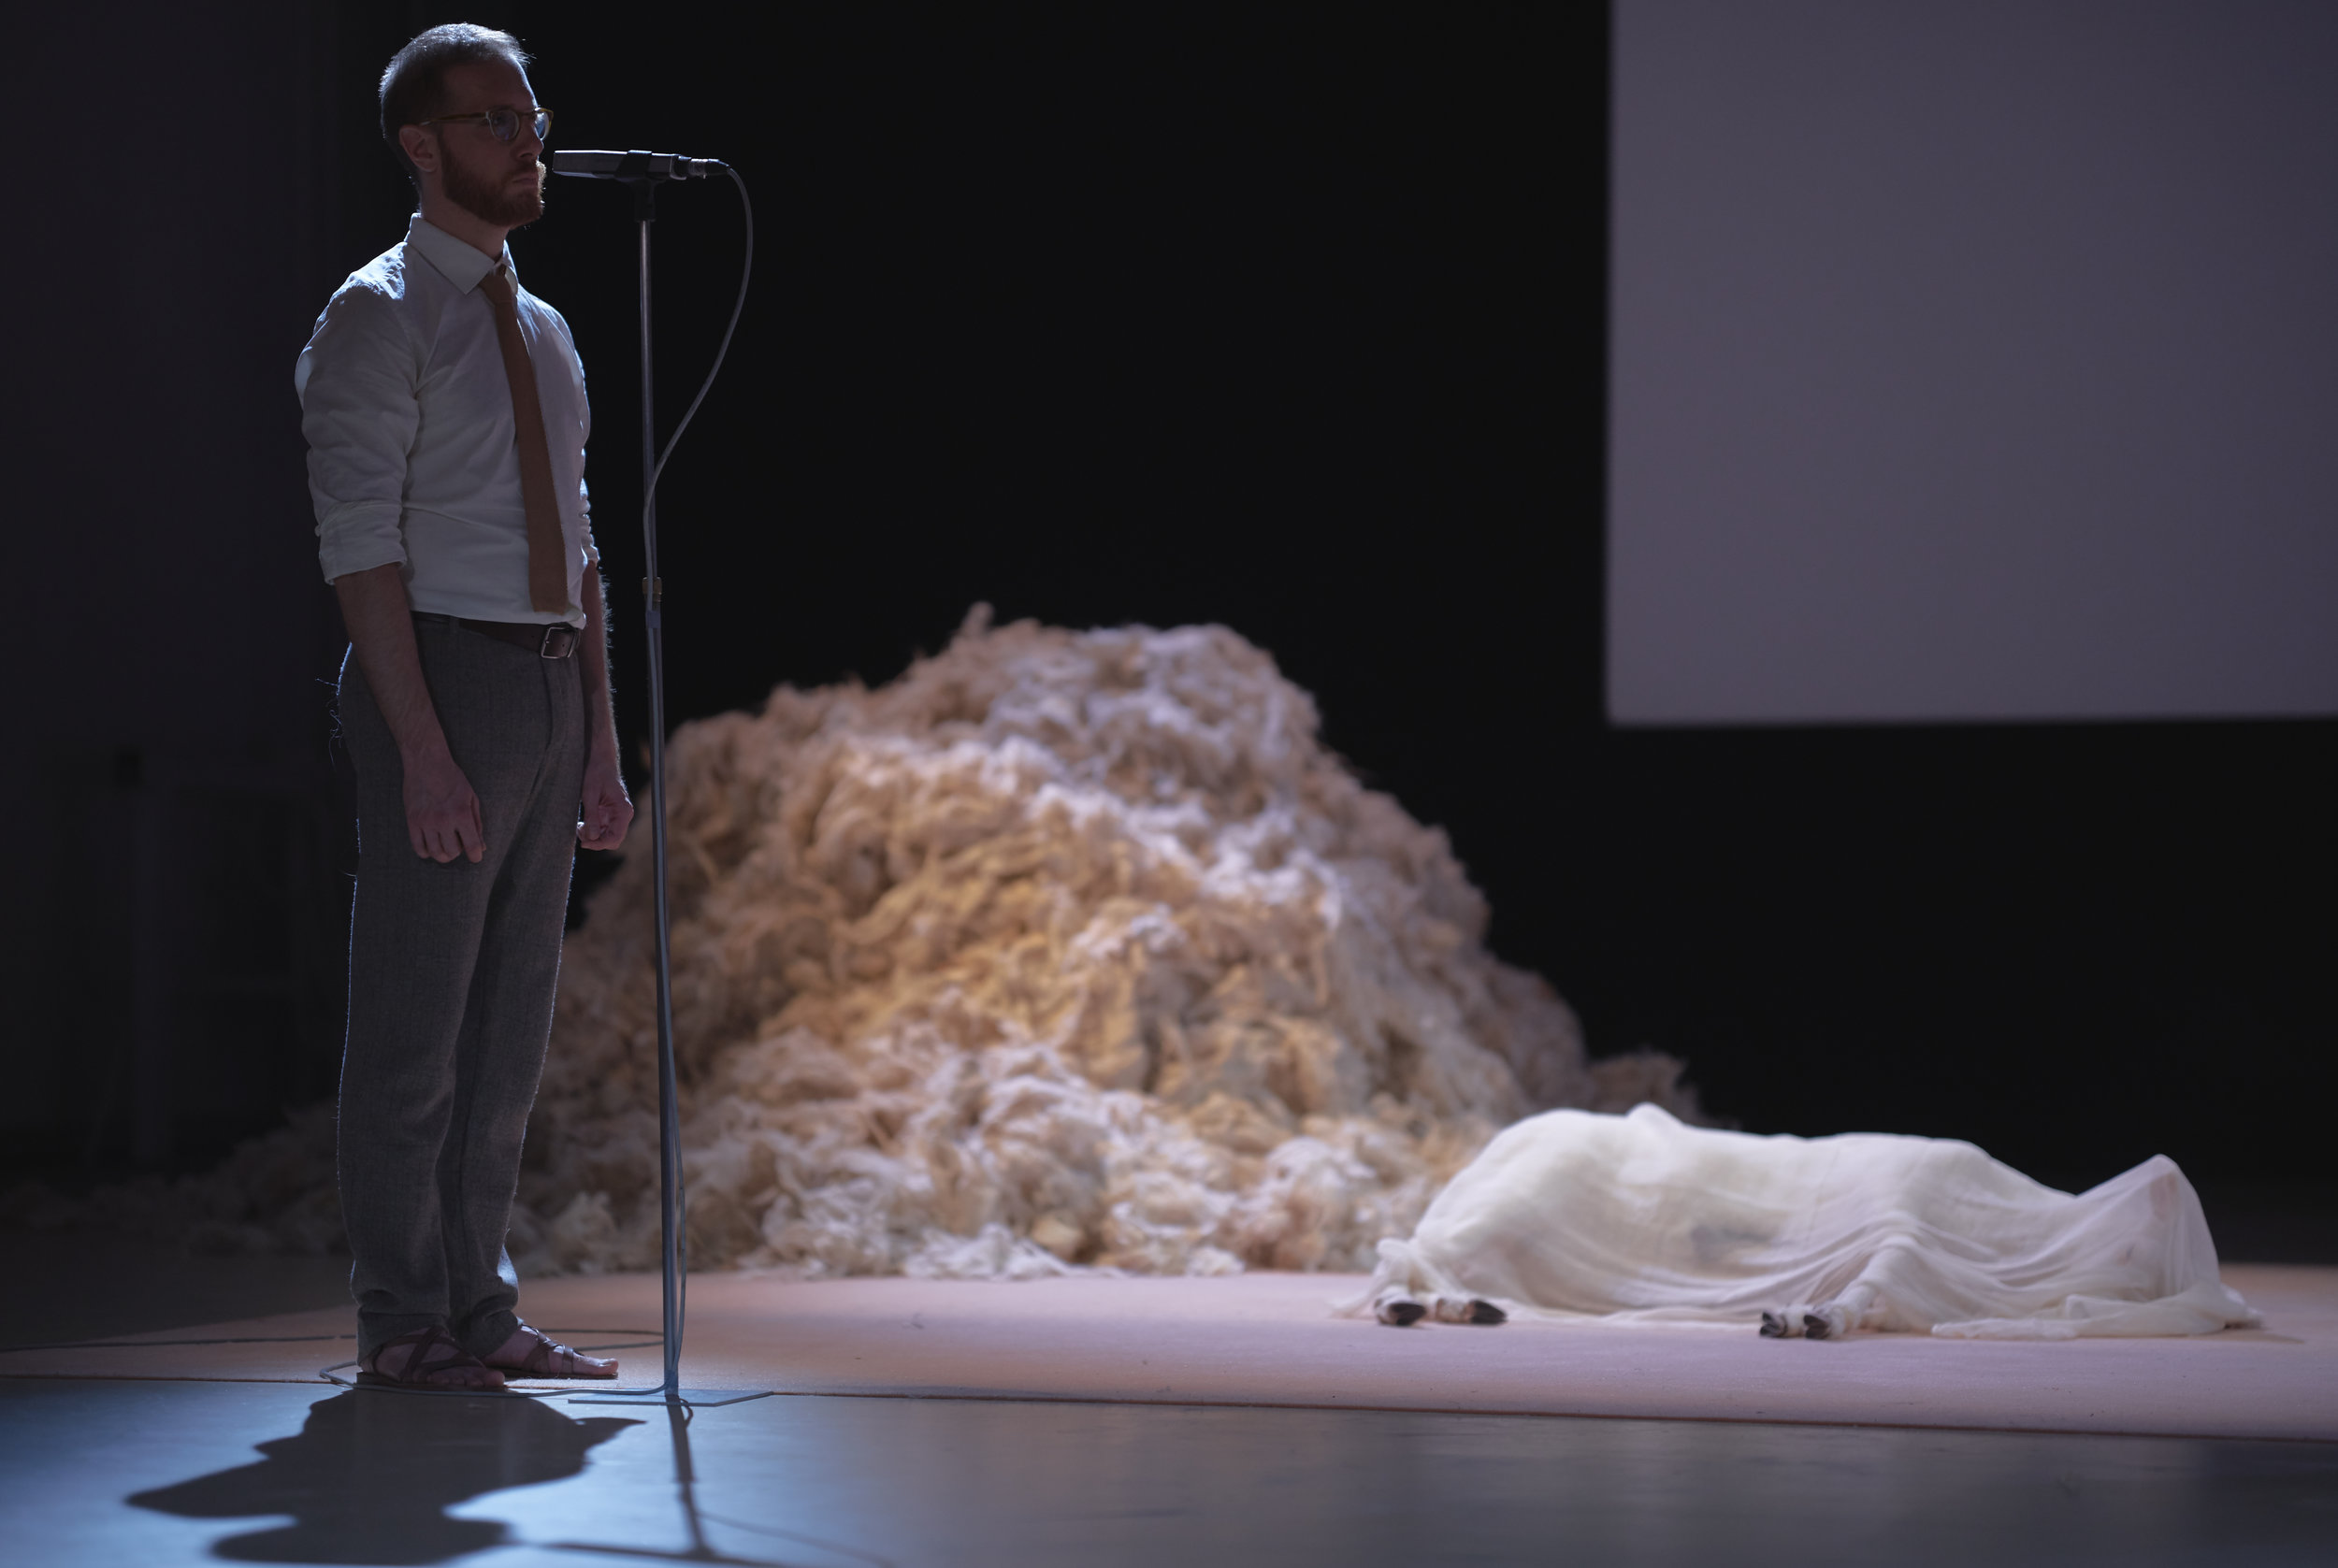 In 2018 Lottozero provided services to the theater company  Anagoor , sourcing specific wool materials for the scenography of their play ORESTEA / Agamennone, Schiavi, Conversio which won the  Silver Lion of the Venice Biennale.